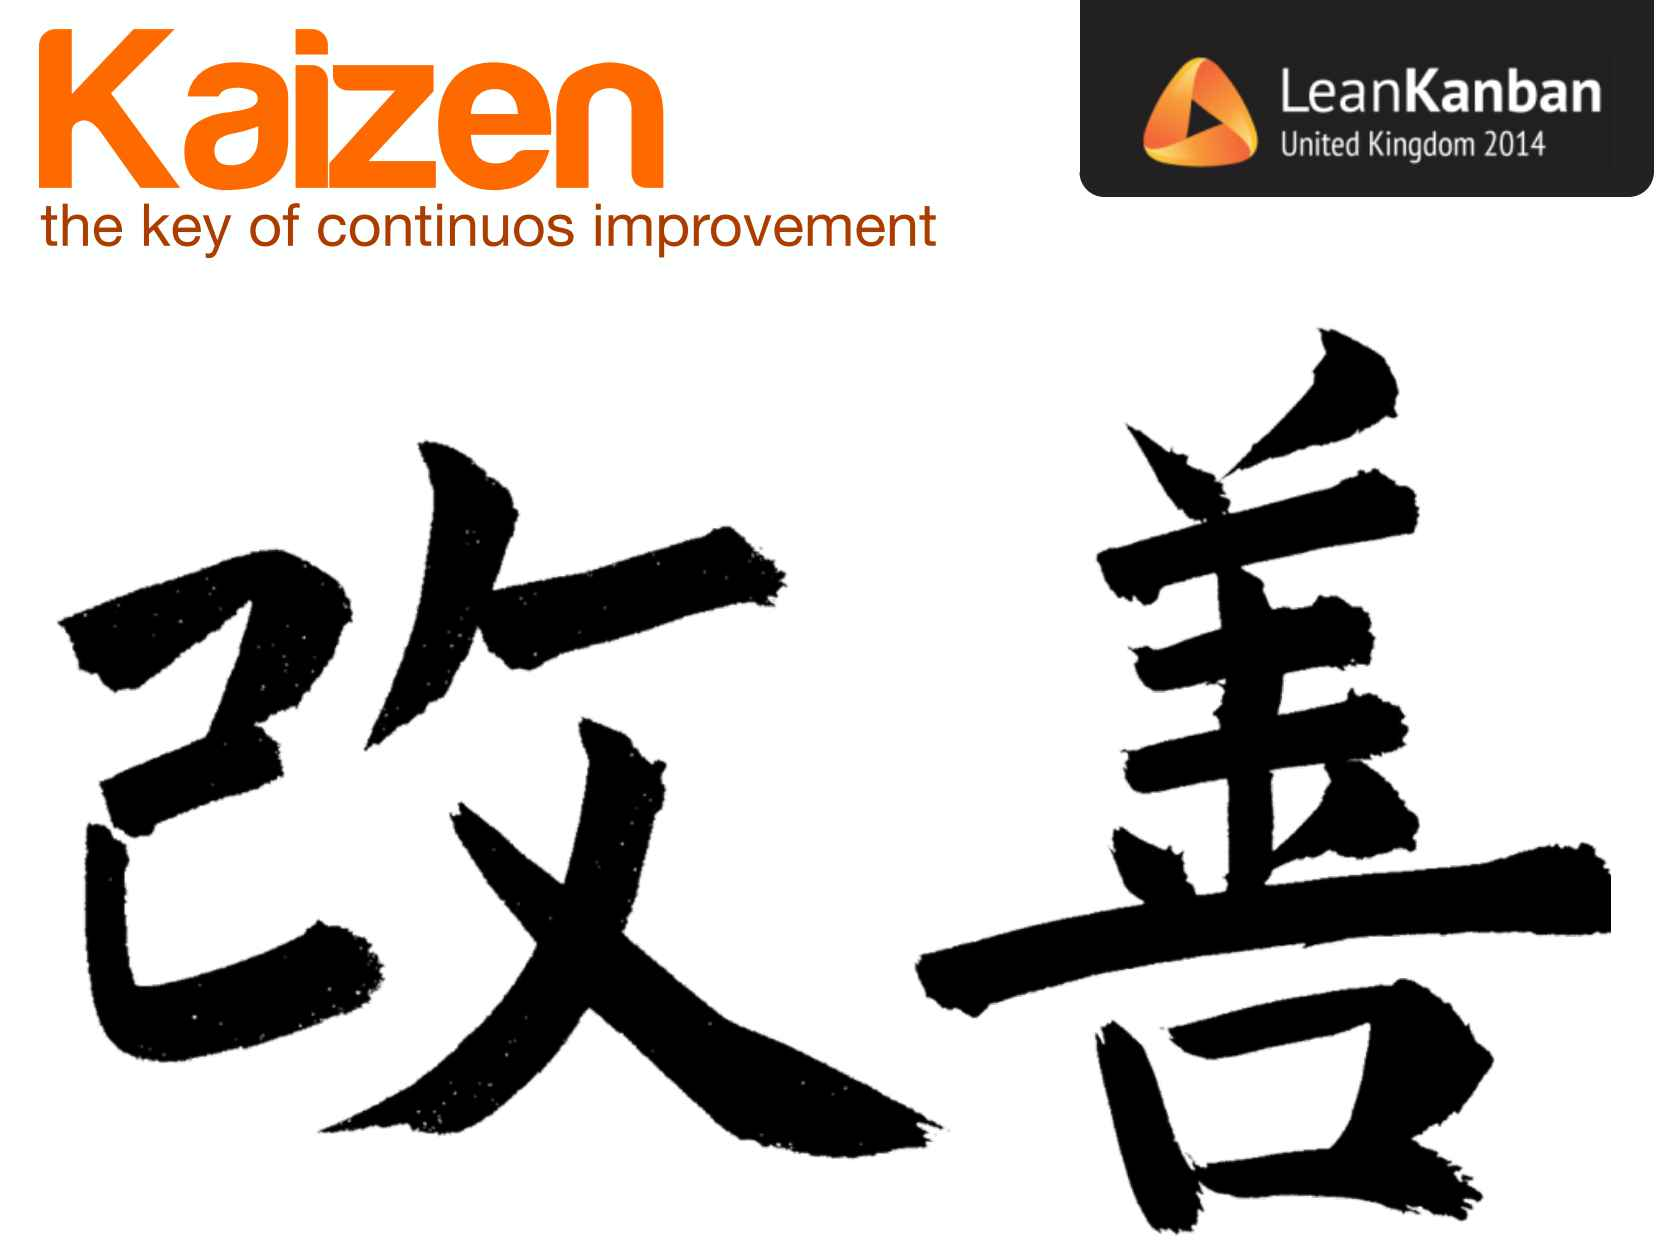 kaizen the key to continuous improvement